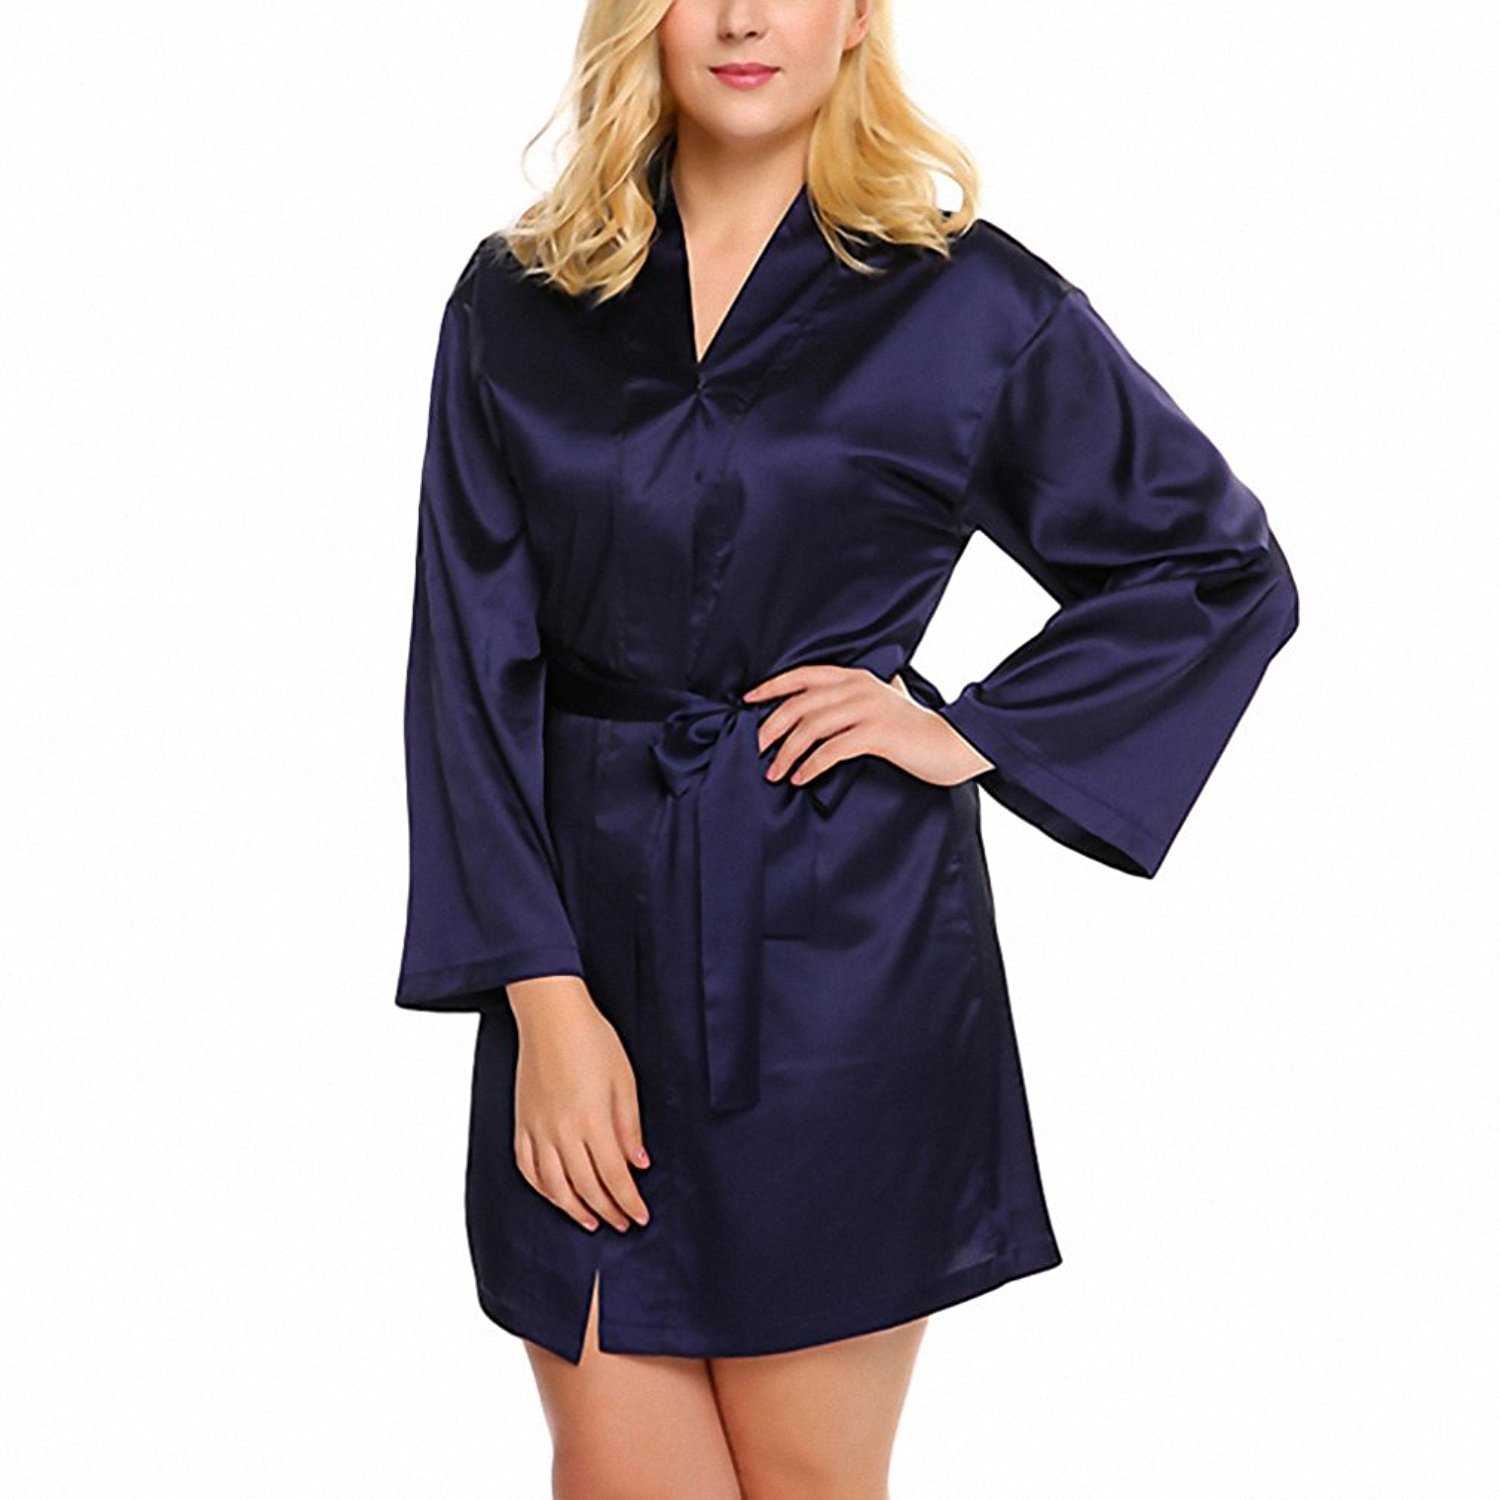 Cheap Plus Size Nightgown And Robe Set Find Plus Size Nightgown And